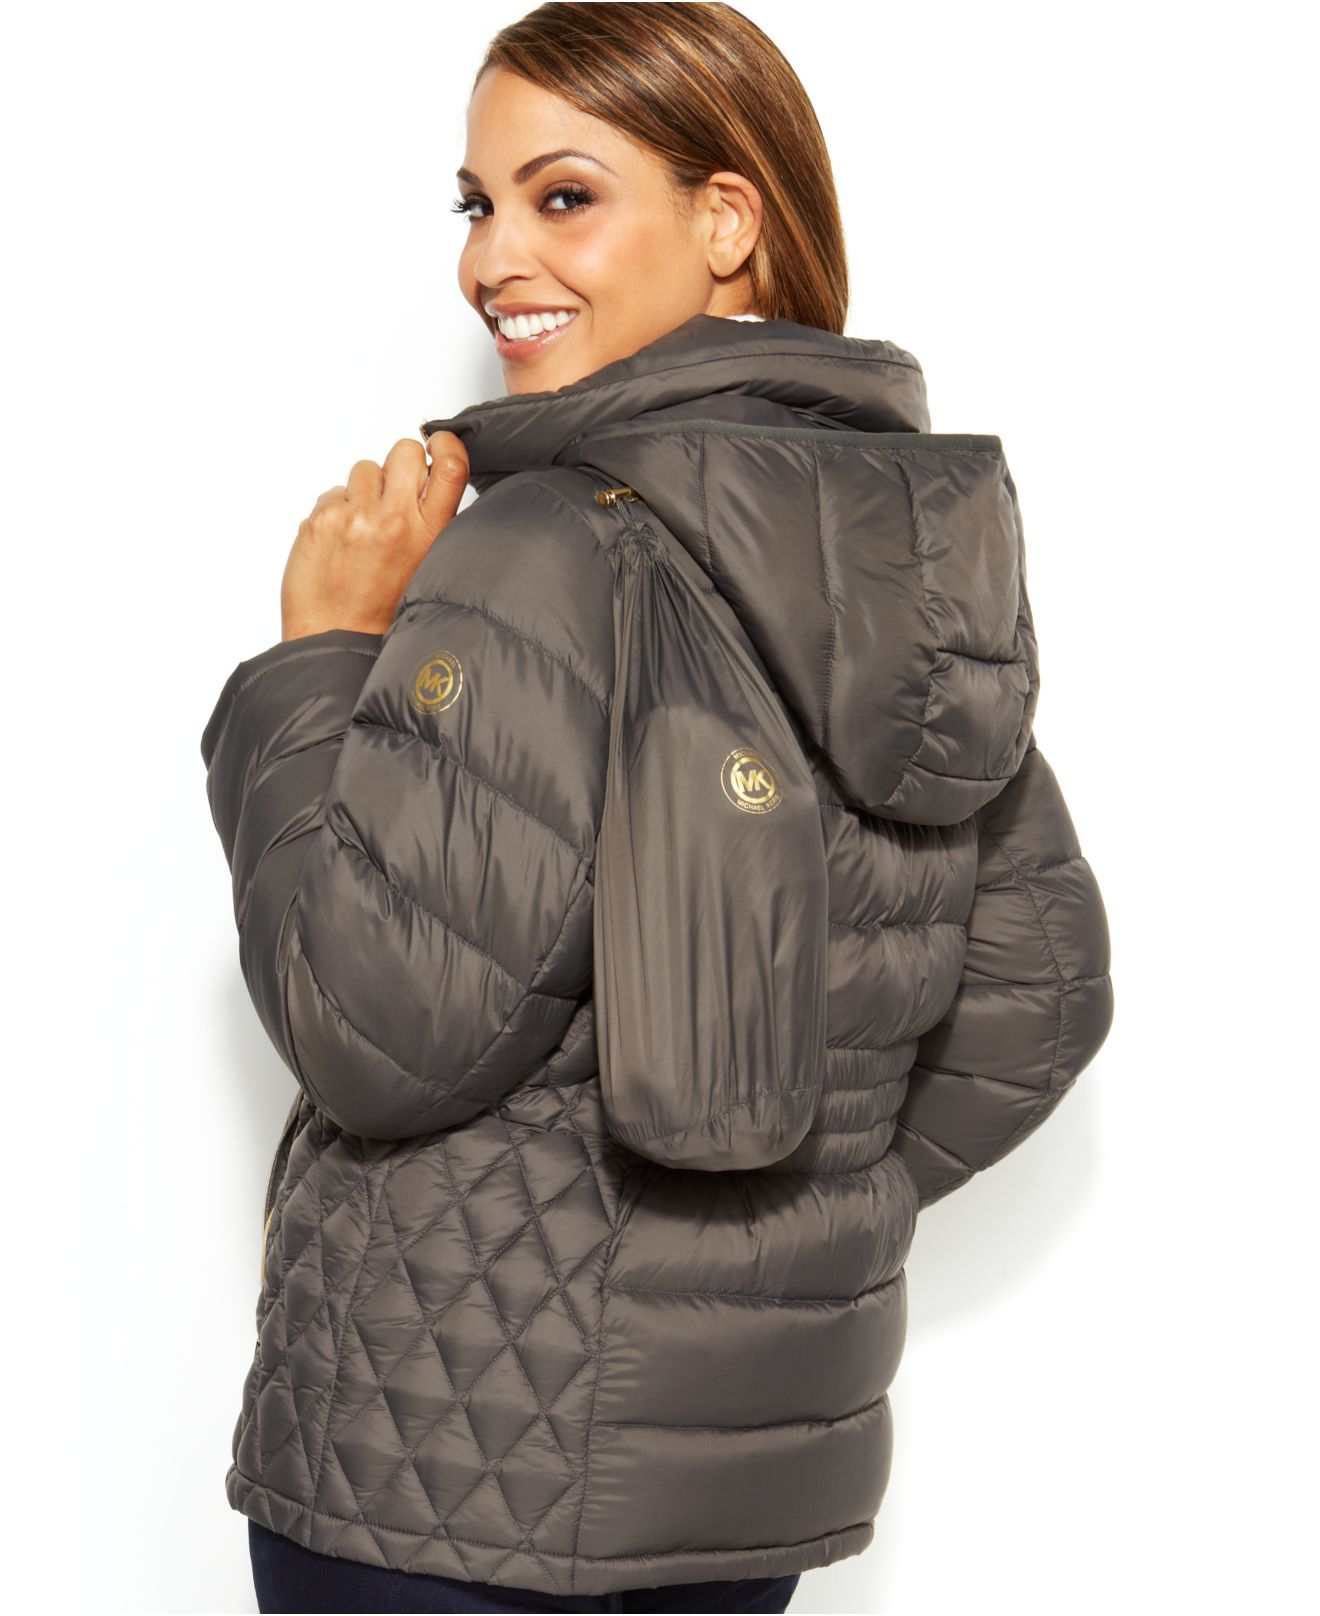 804601ff1cb8 Lyst - Michael Kors Michael Plus Size Hooded Quilted Down Packable ...